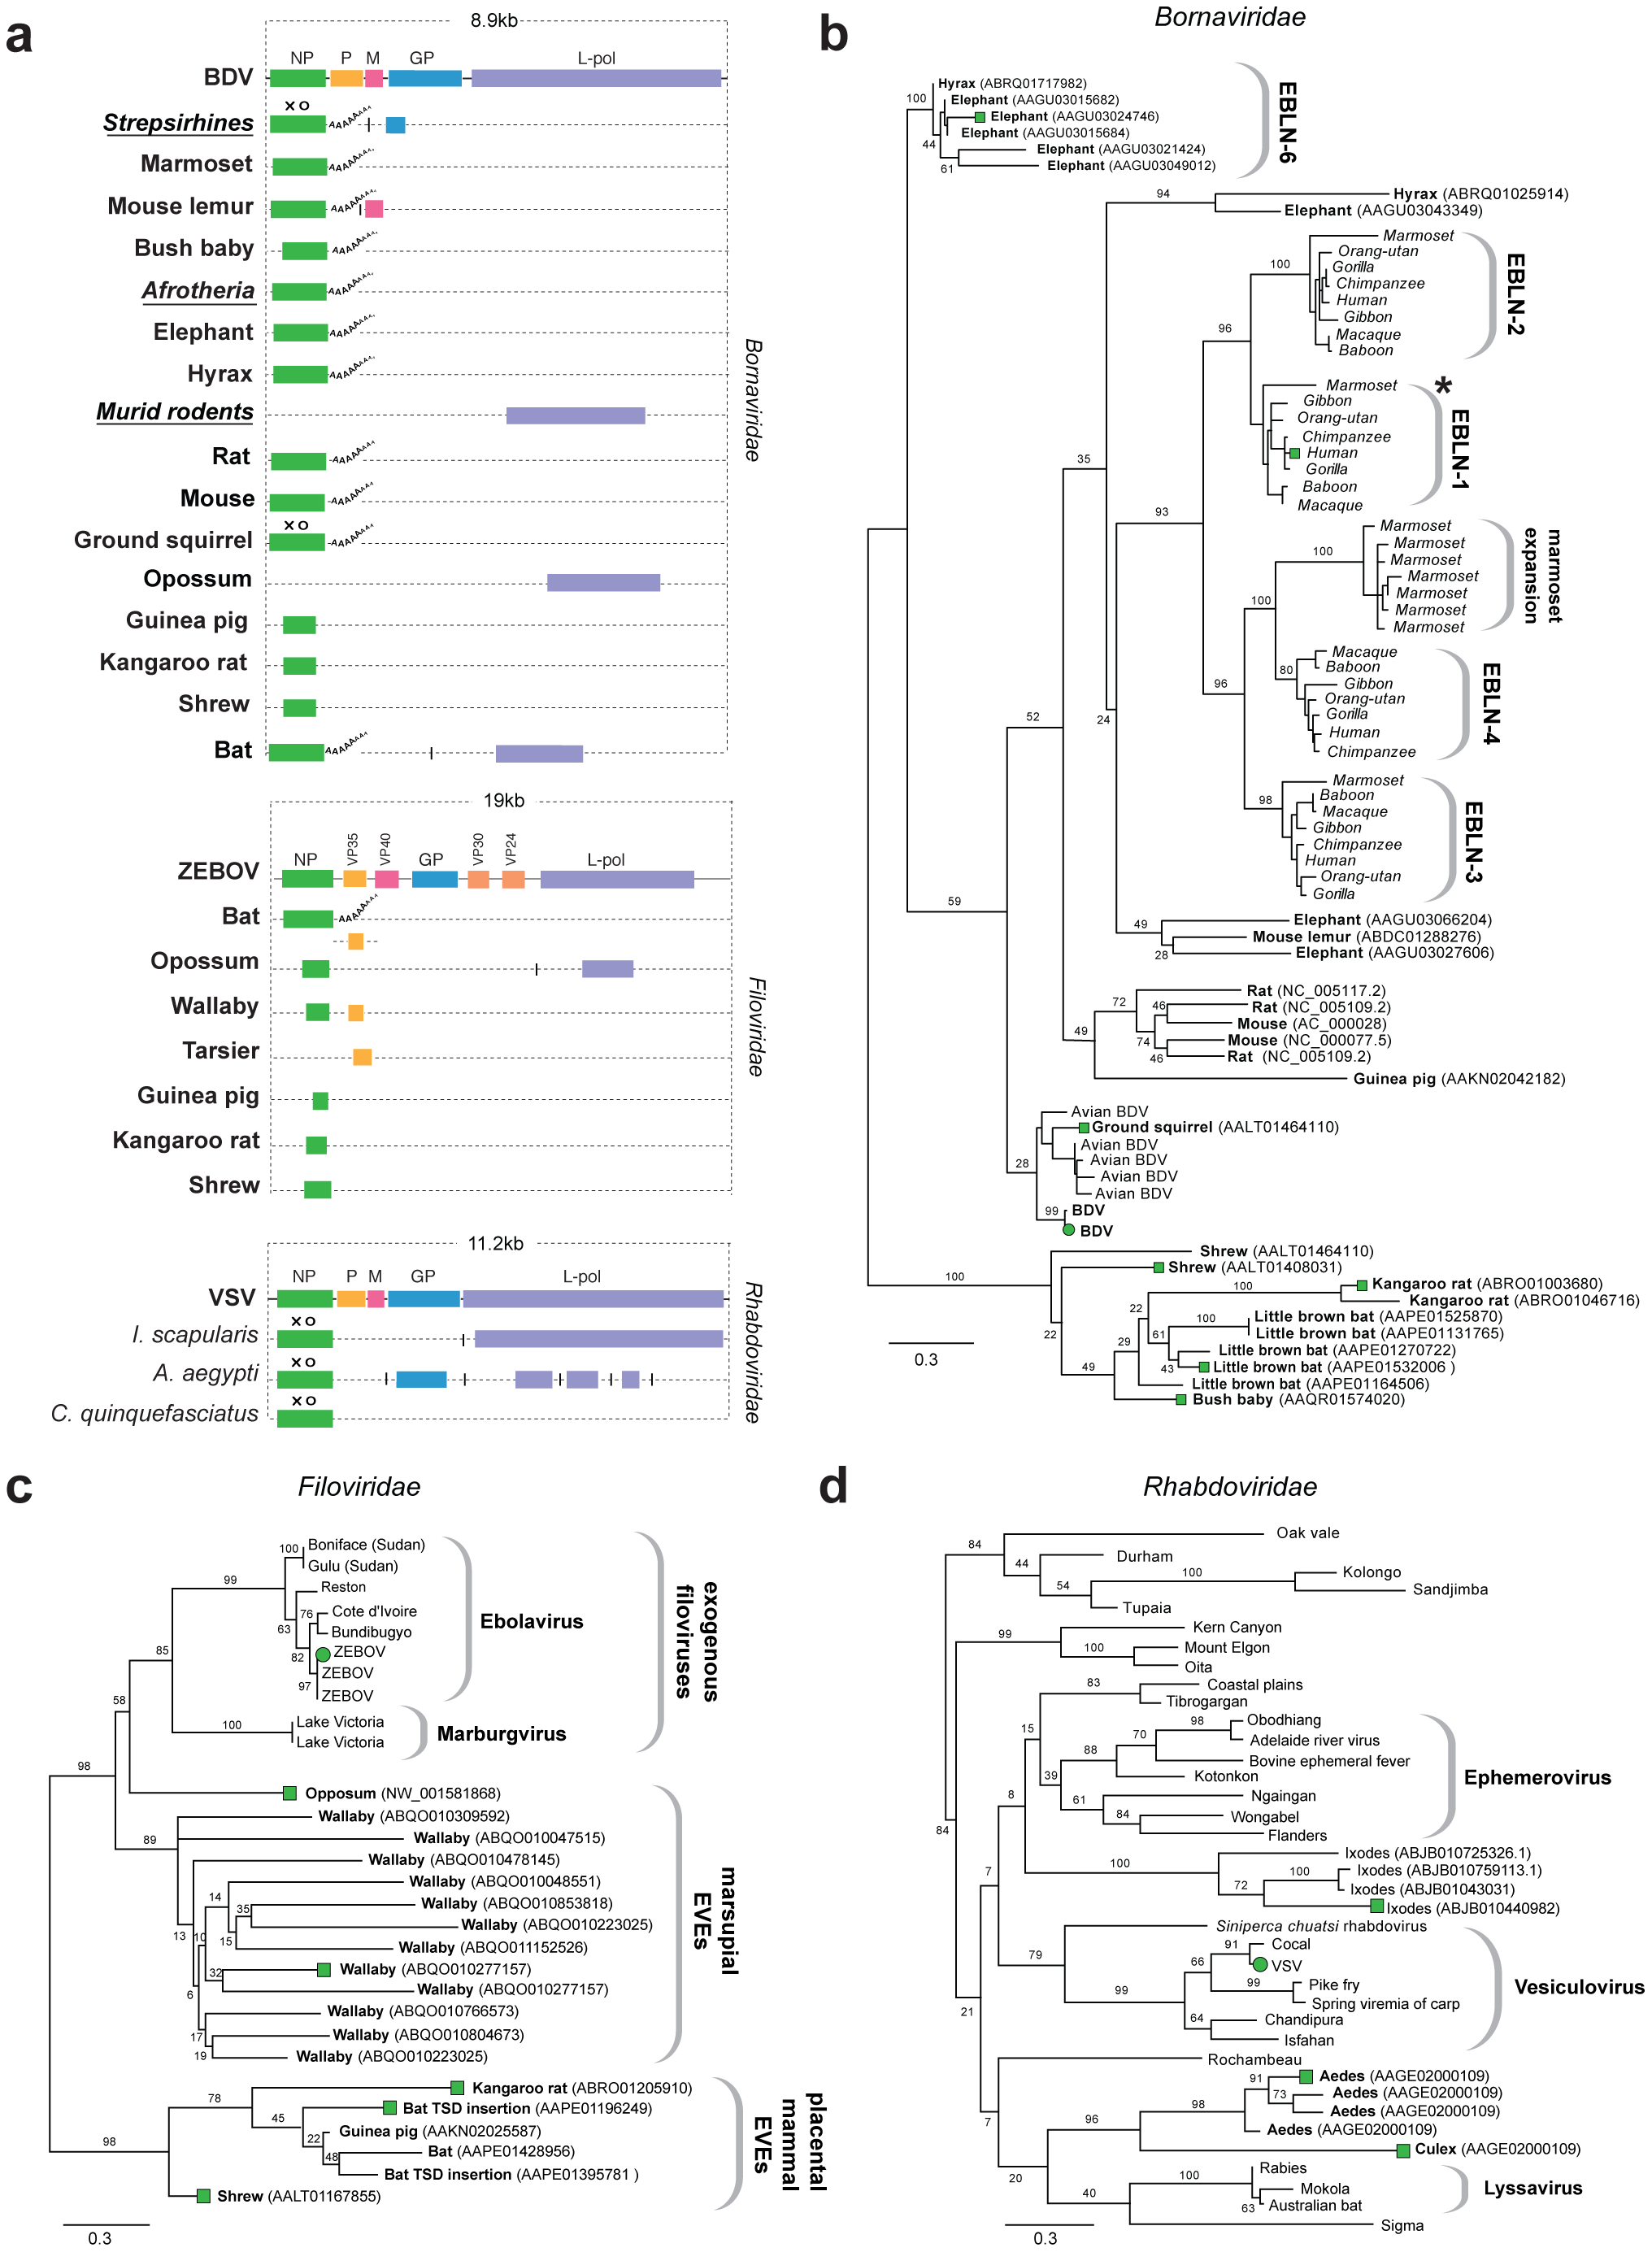 Genetic structures and phylogenetic relationships of Mononegavirus EVEs.